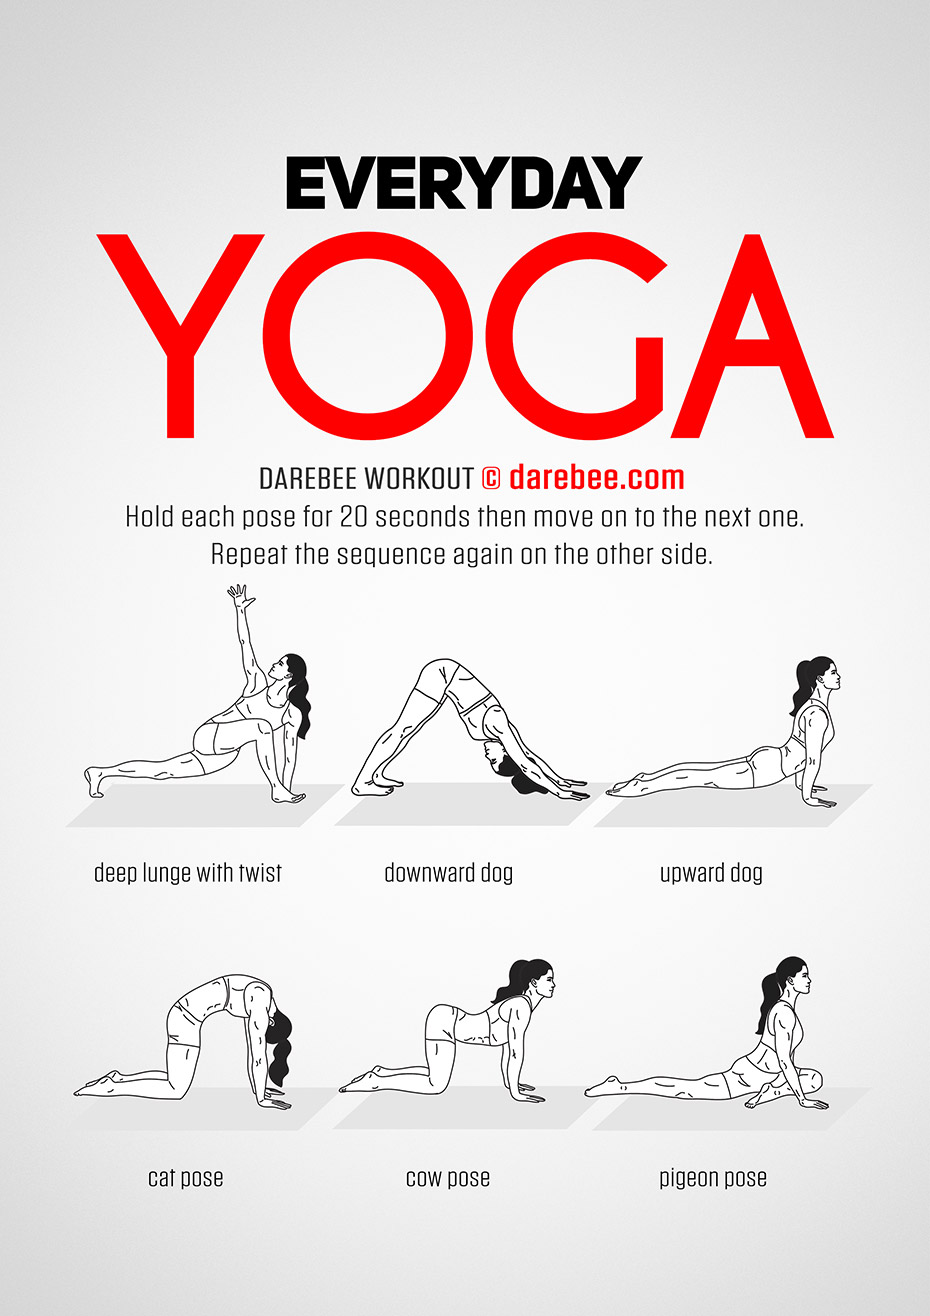 Everyday Yoga Workout